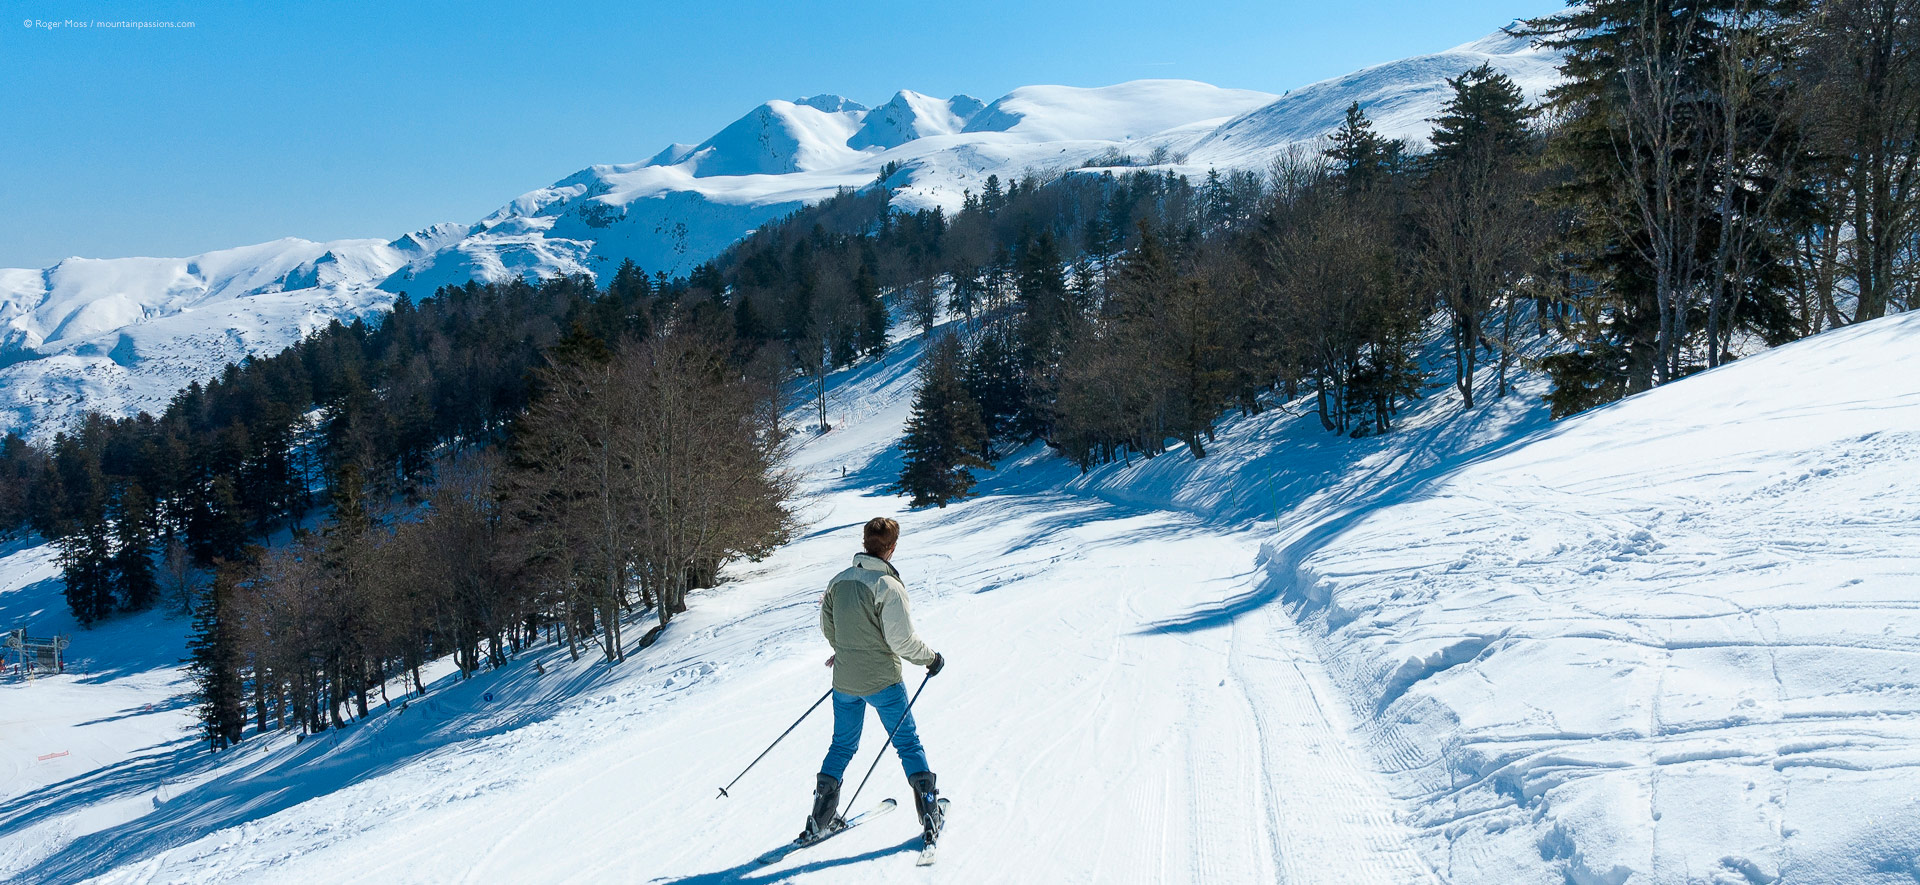 Young skier among unspoilt mountain scenery with pine trees